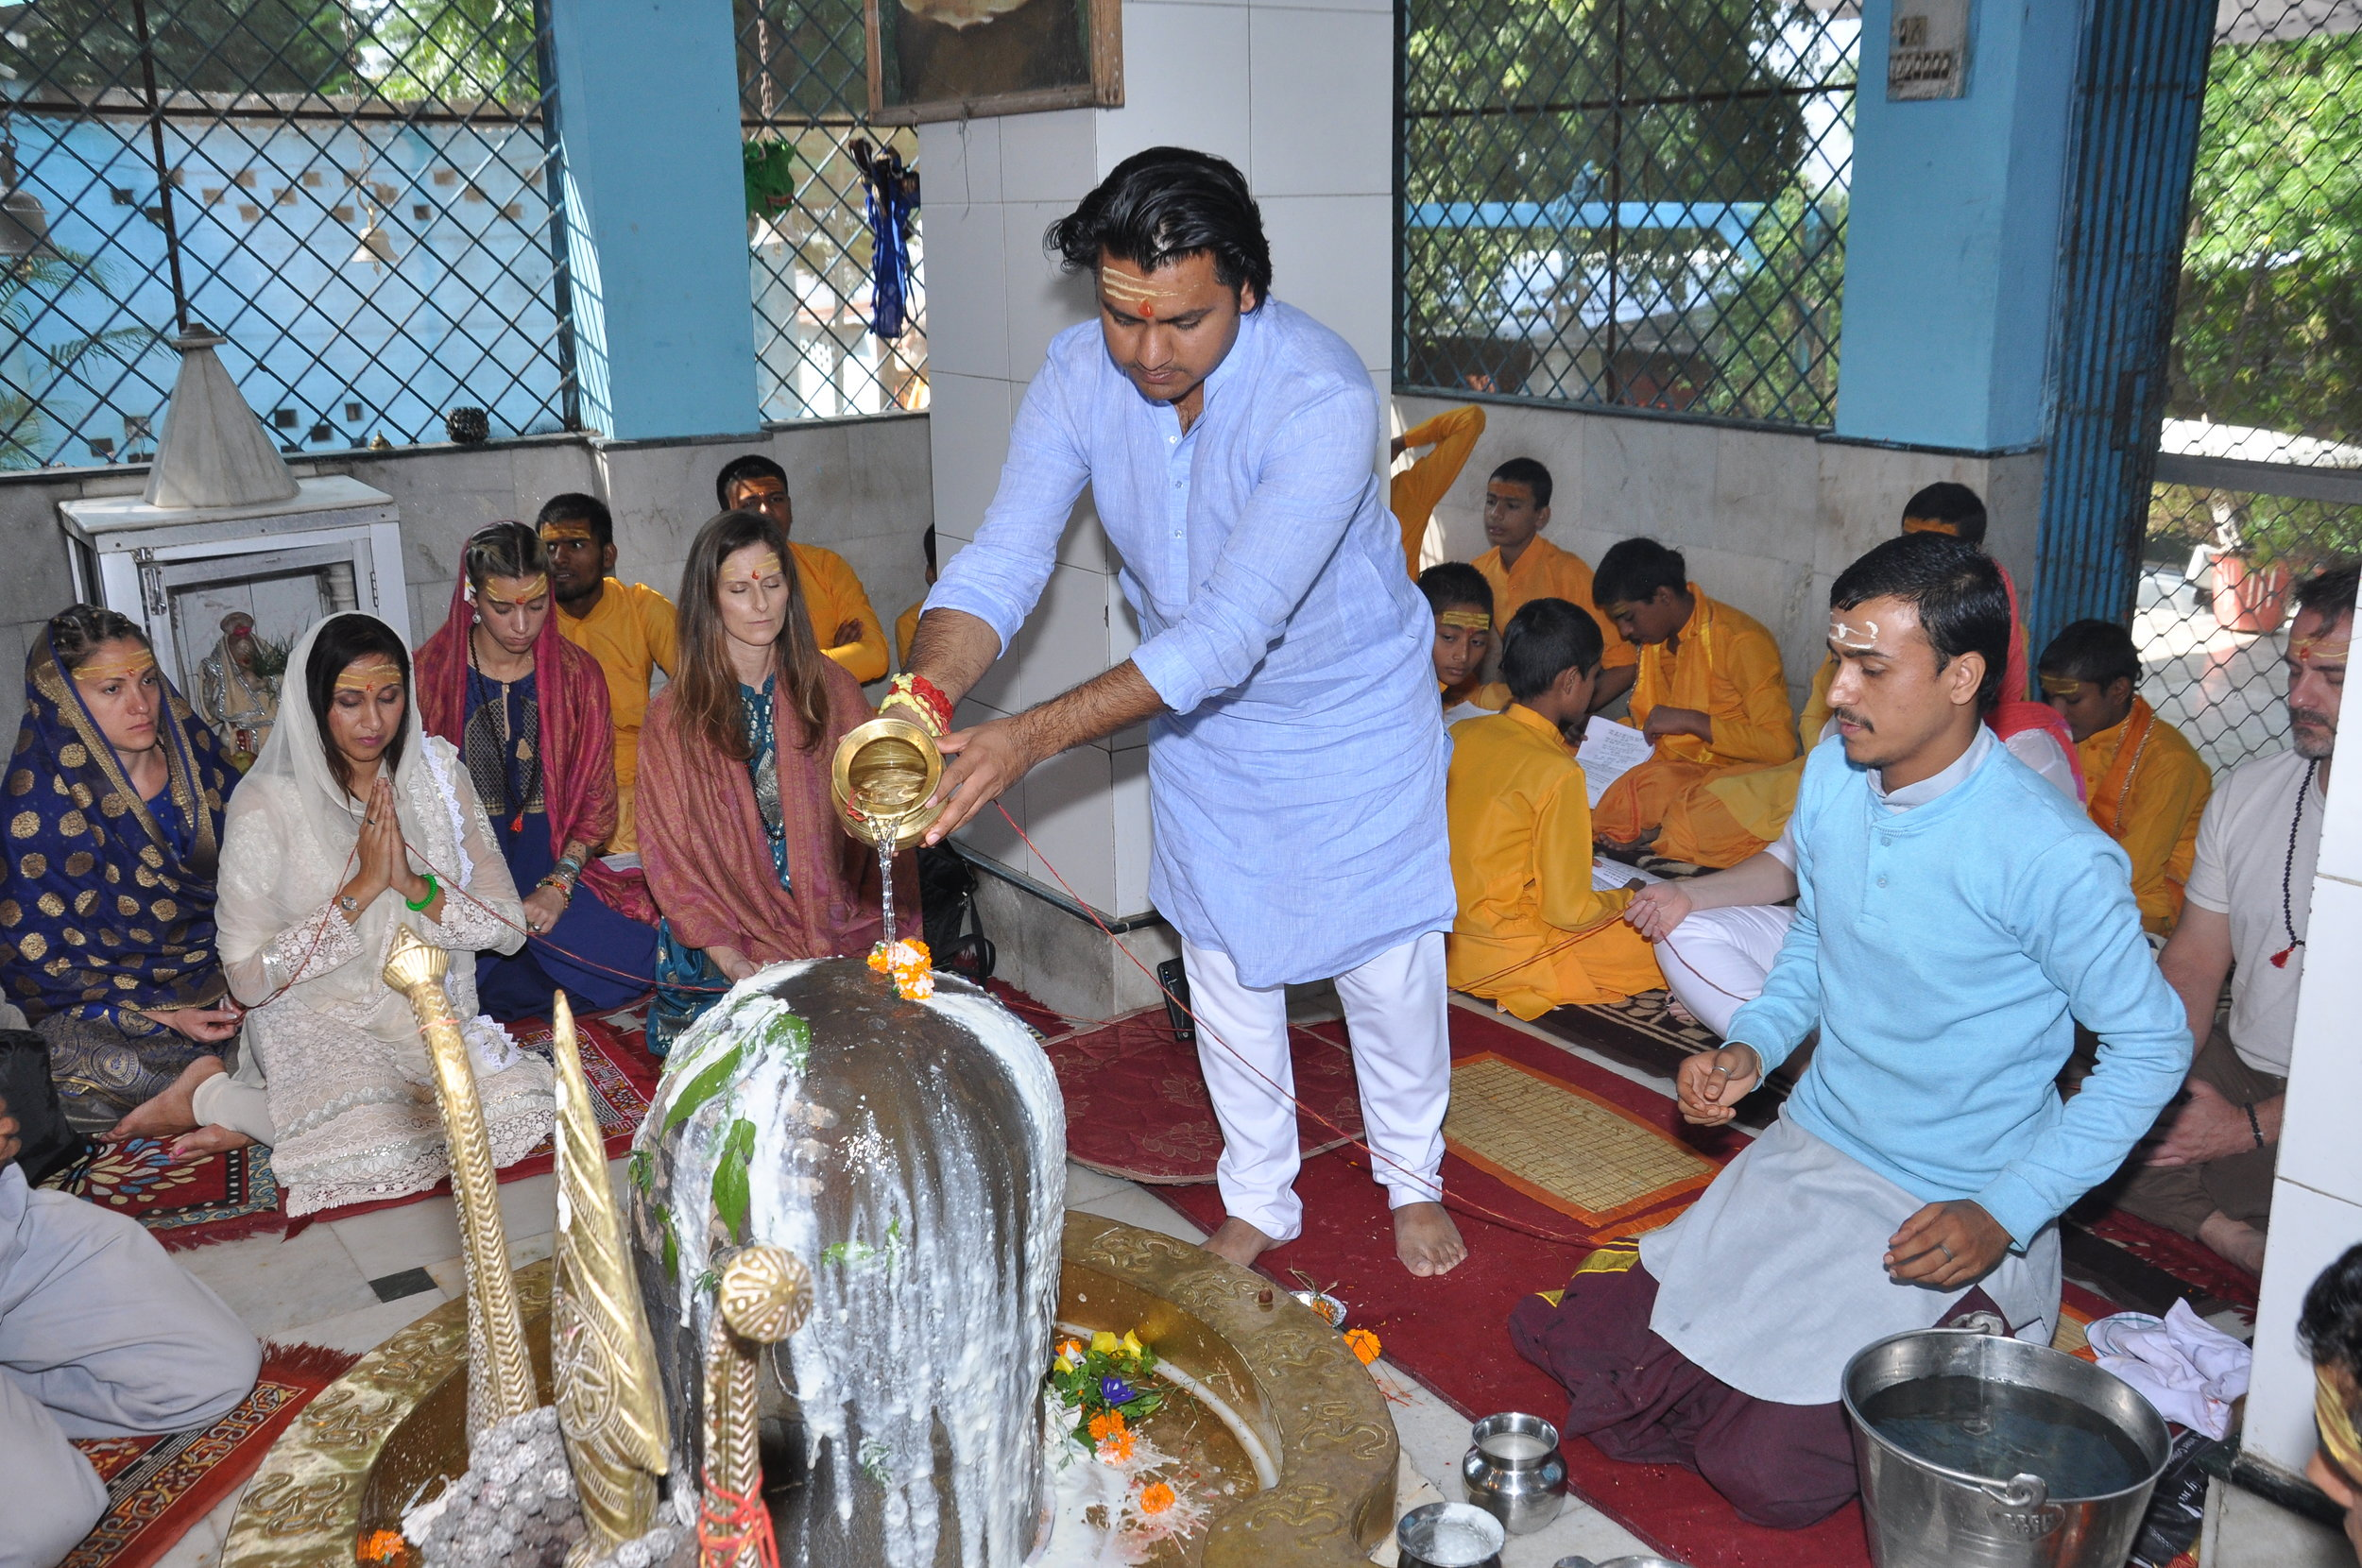 Chandresh during one of the signature healing ceremonies at the retreat